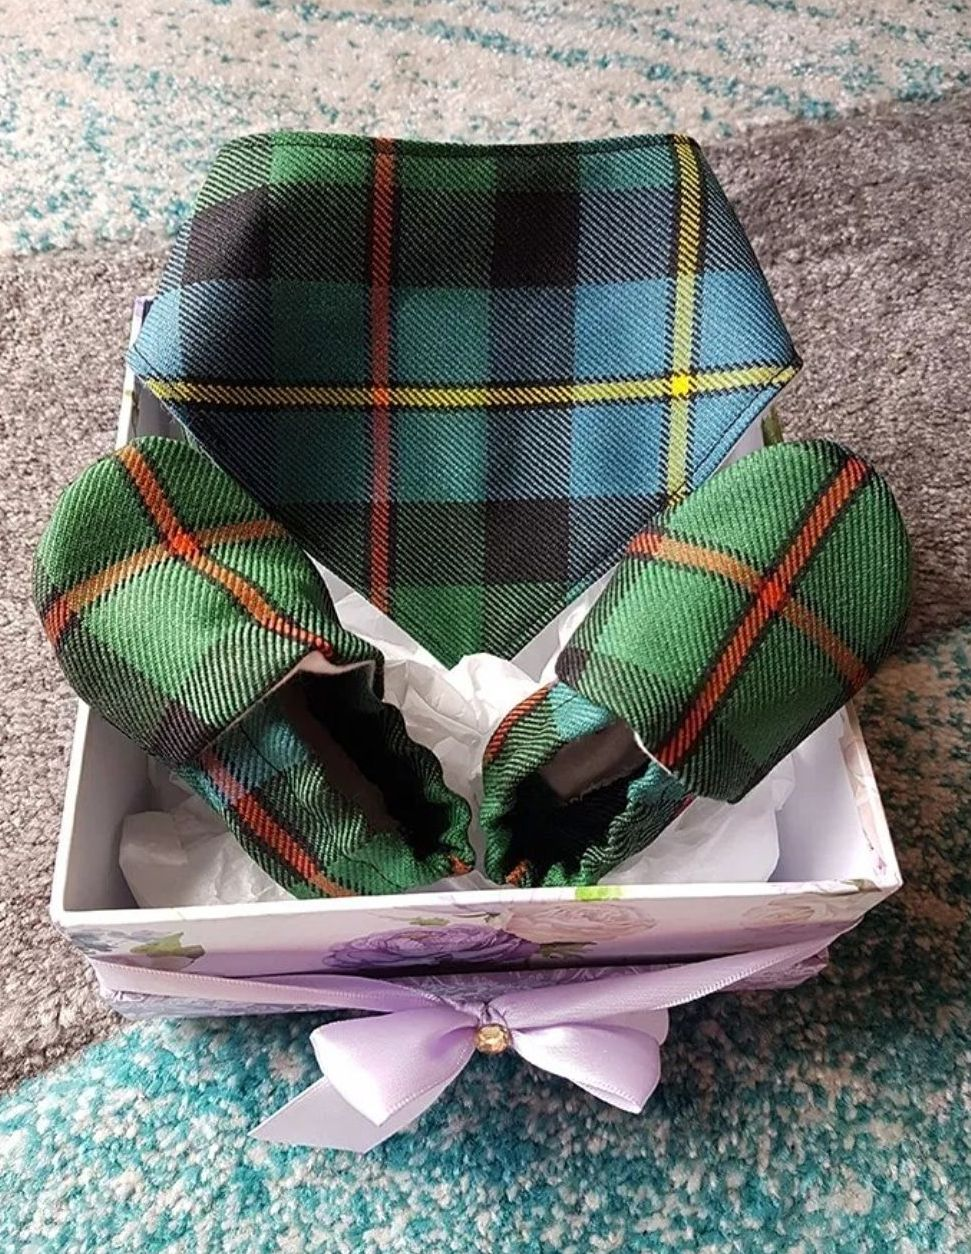 Tartan baby slippers and bib. A new clan member, new born gift idea